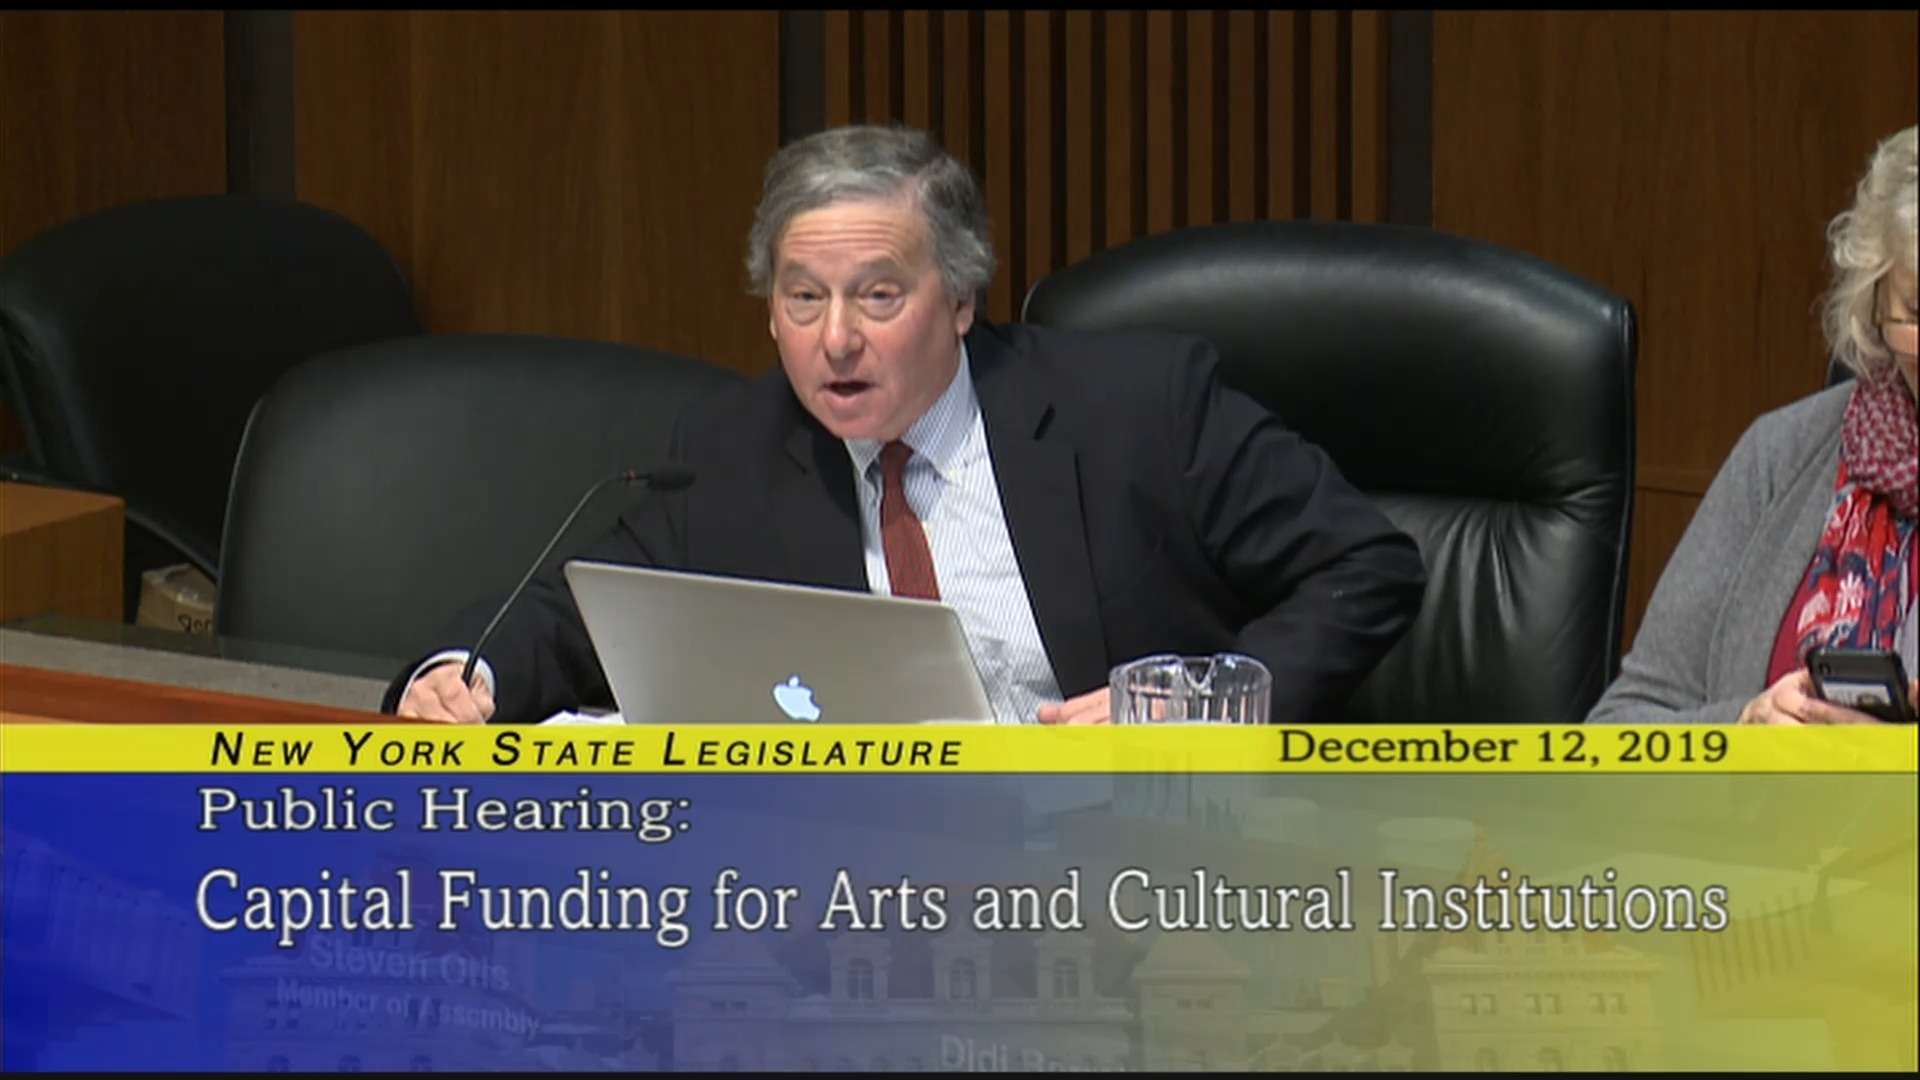 Public Hearing About Capital Funding For The Arts And Cultural Organizations (1)